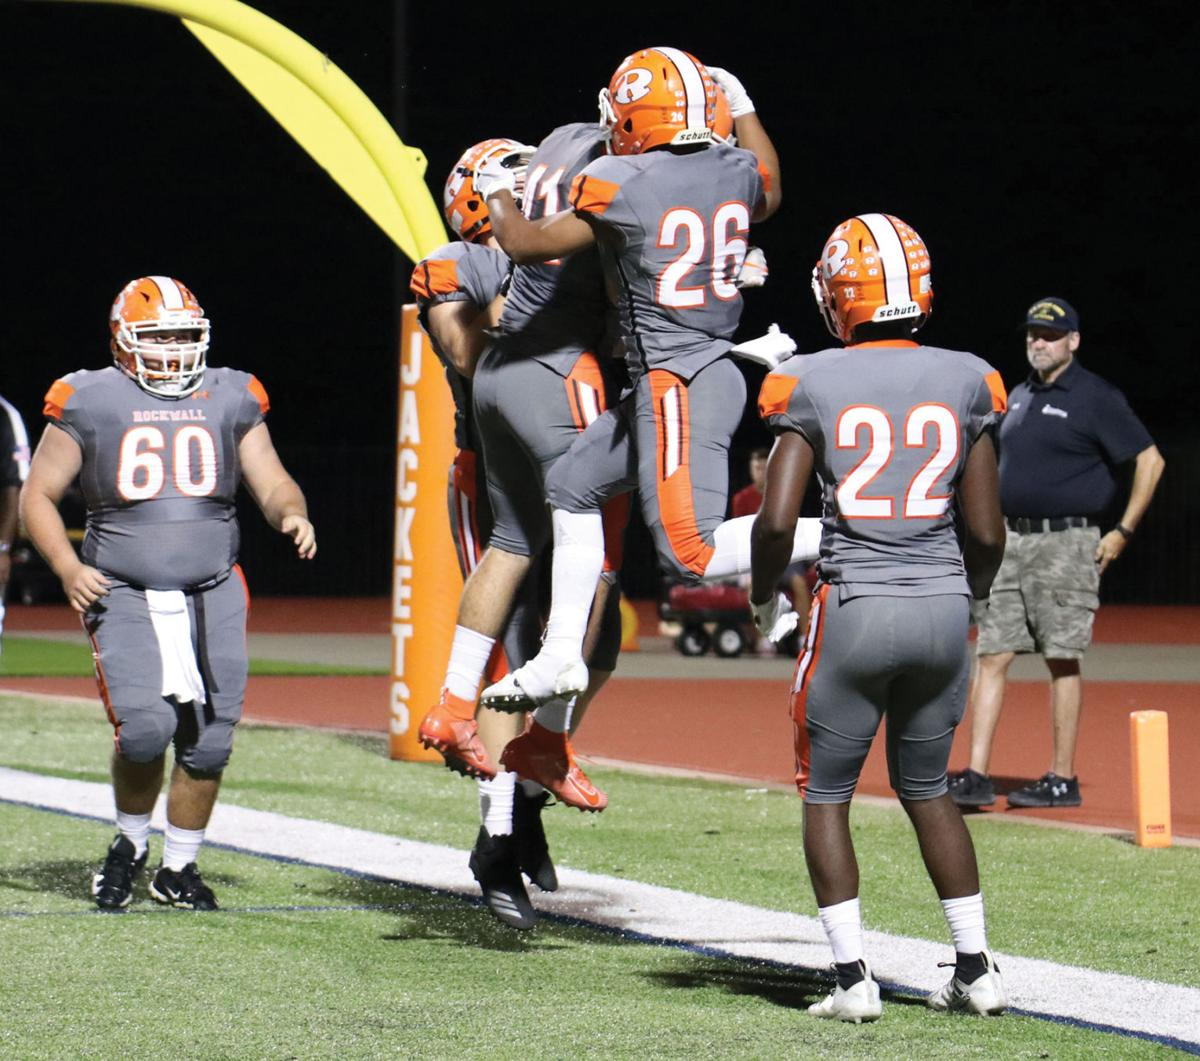 Lift up for Rockwall